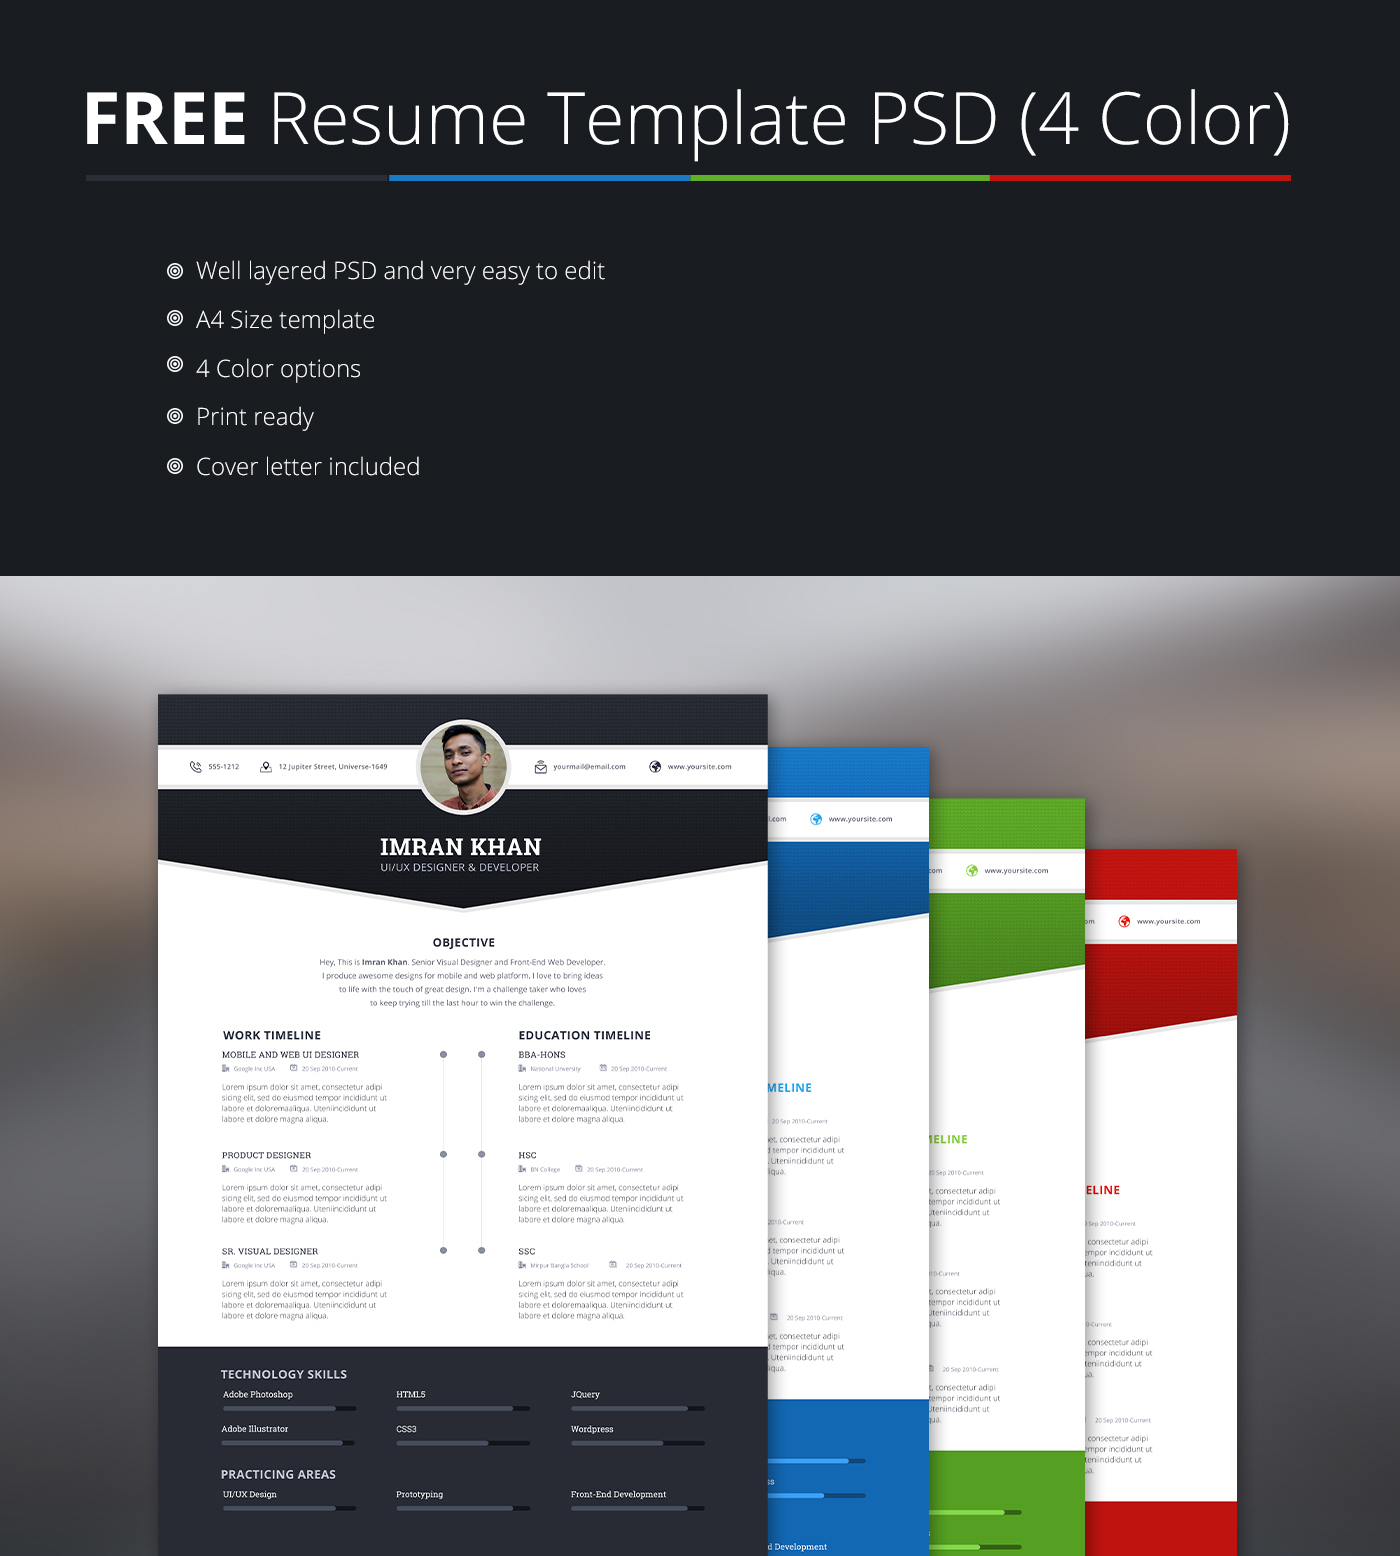 free resume template psd 4 colors on behance - Free Resume Templates Free